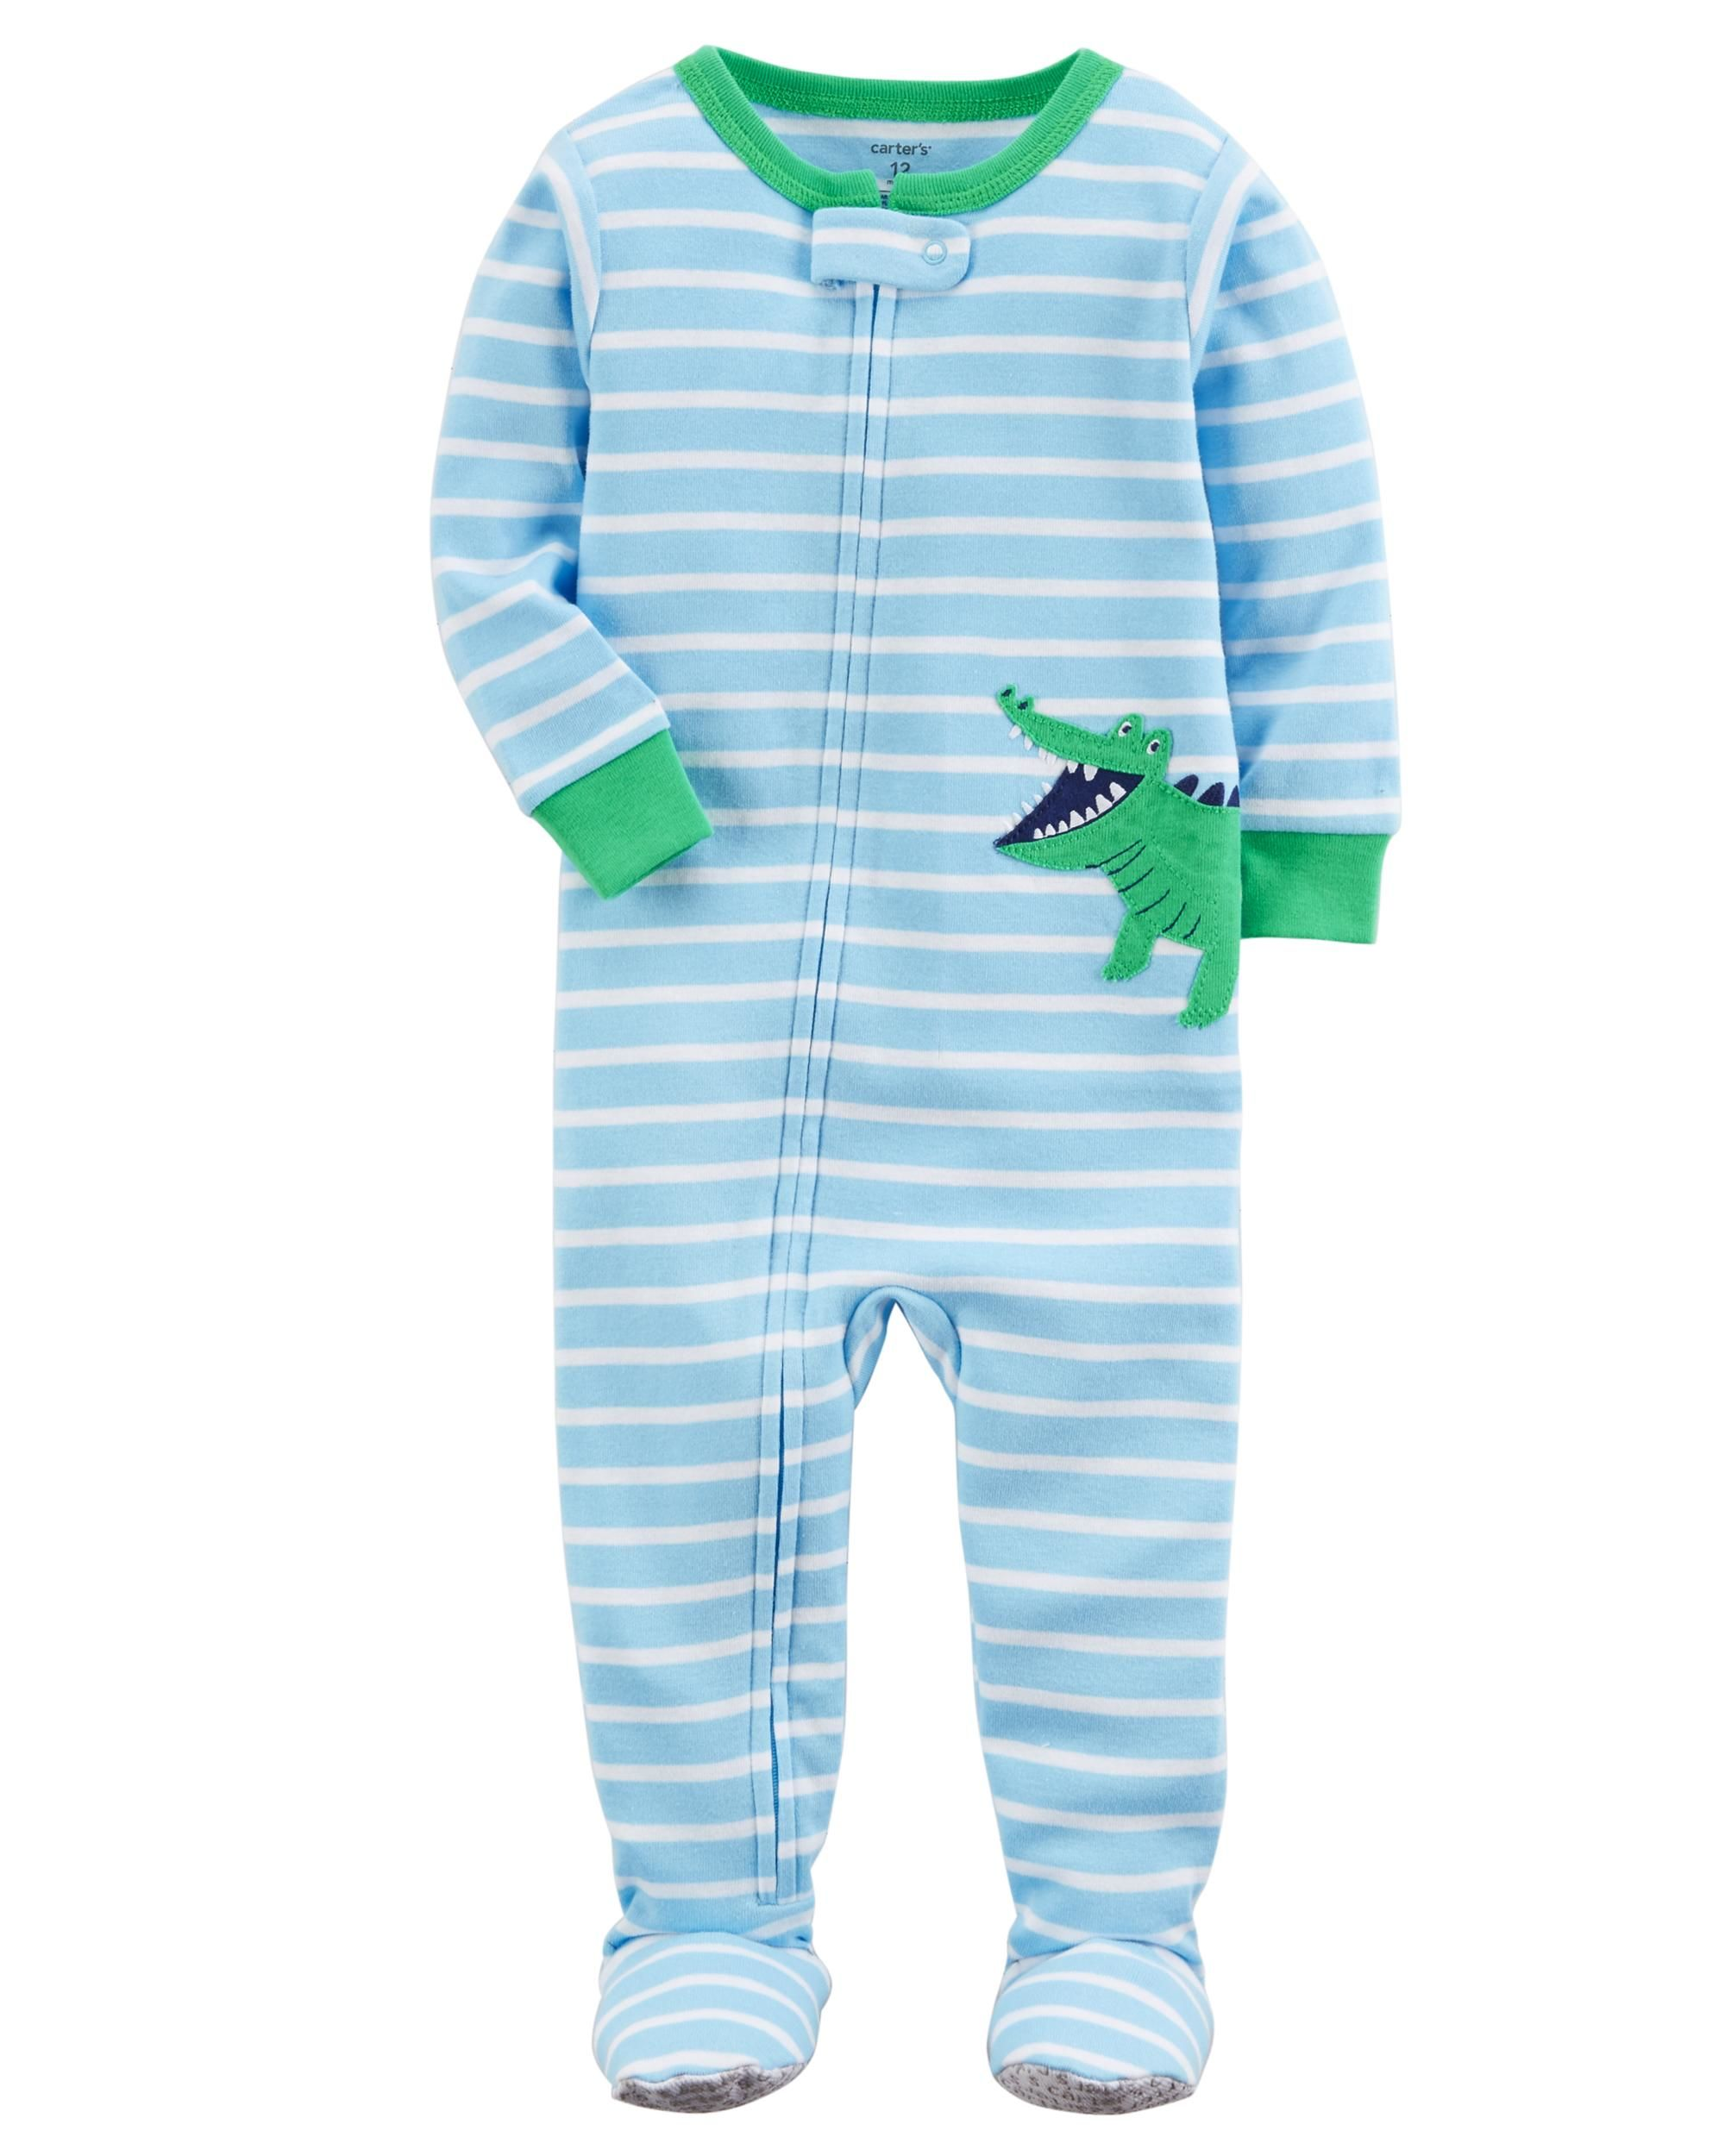 Best Baby and Toddler Pajamas of 2018